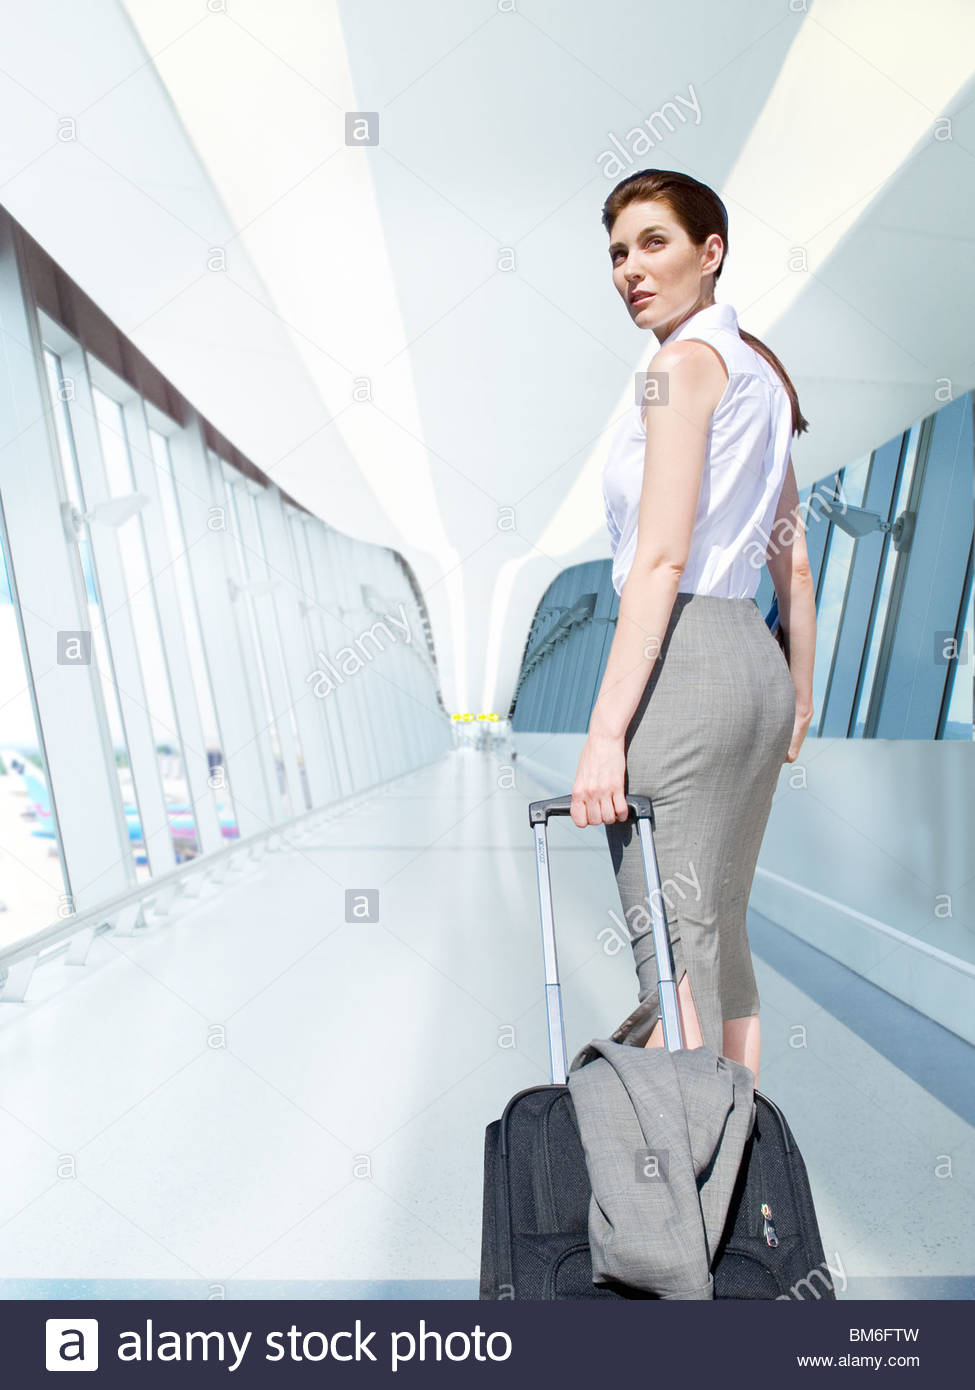 Businesswoman pulling rolling luggage in airport concourse - Stock Image